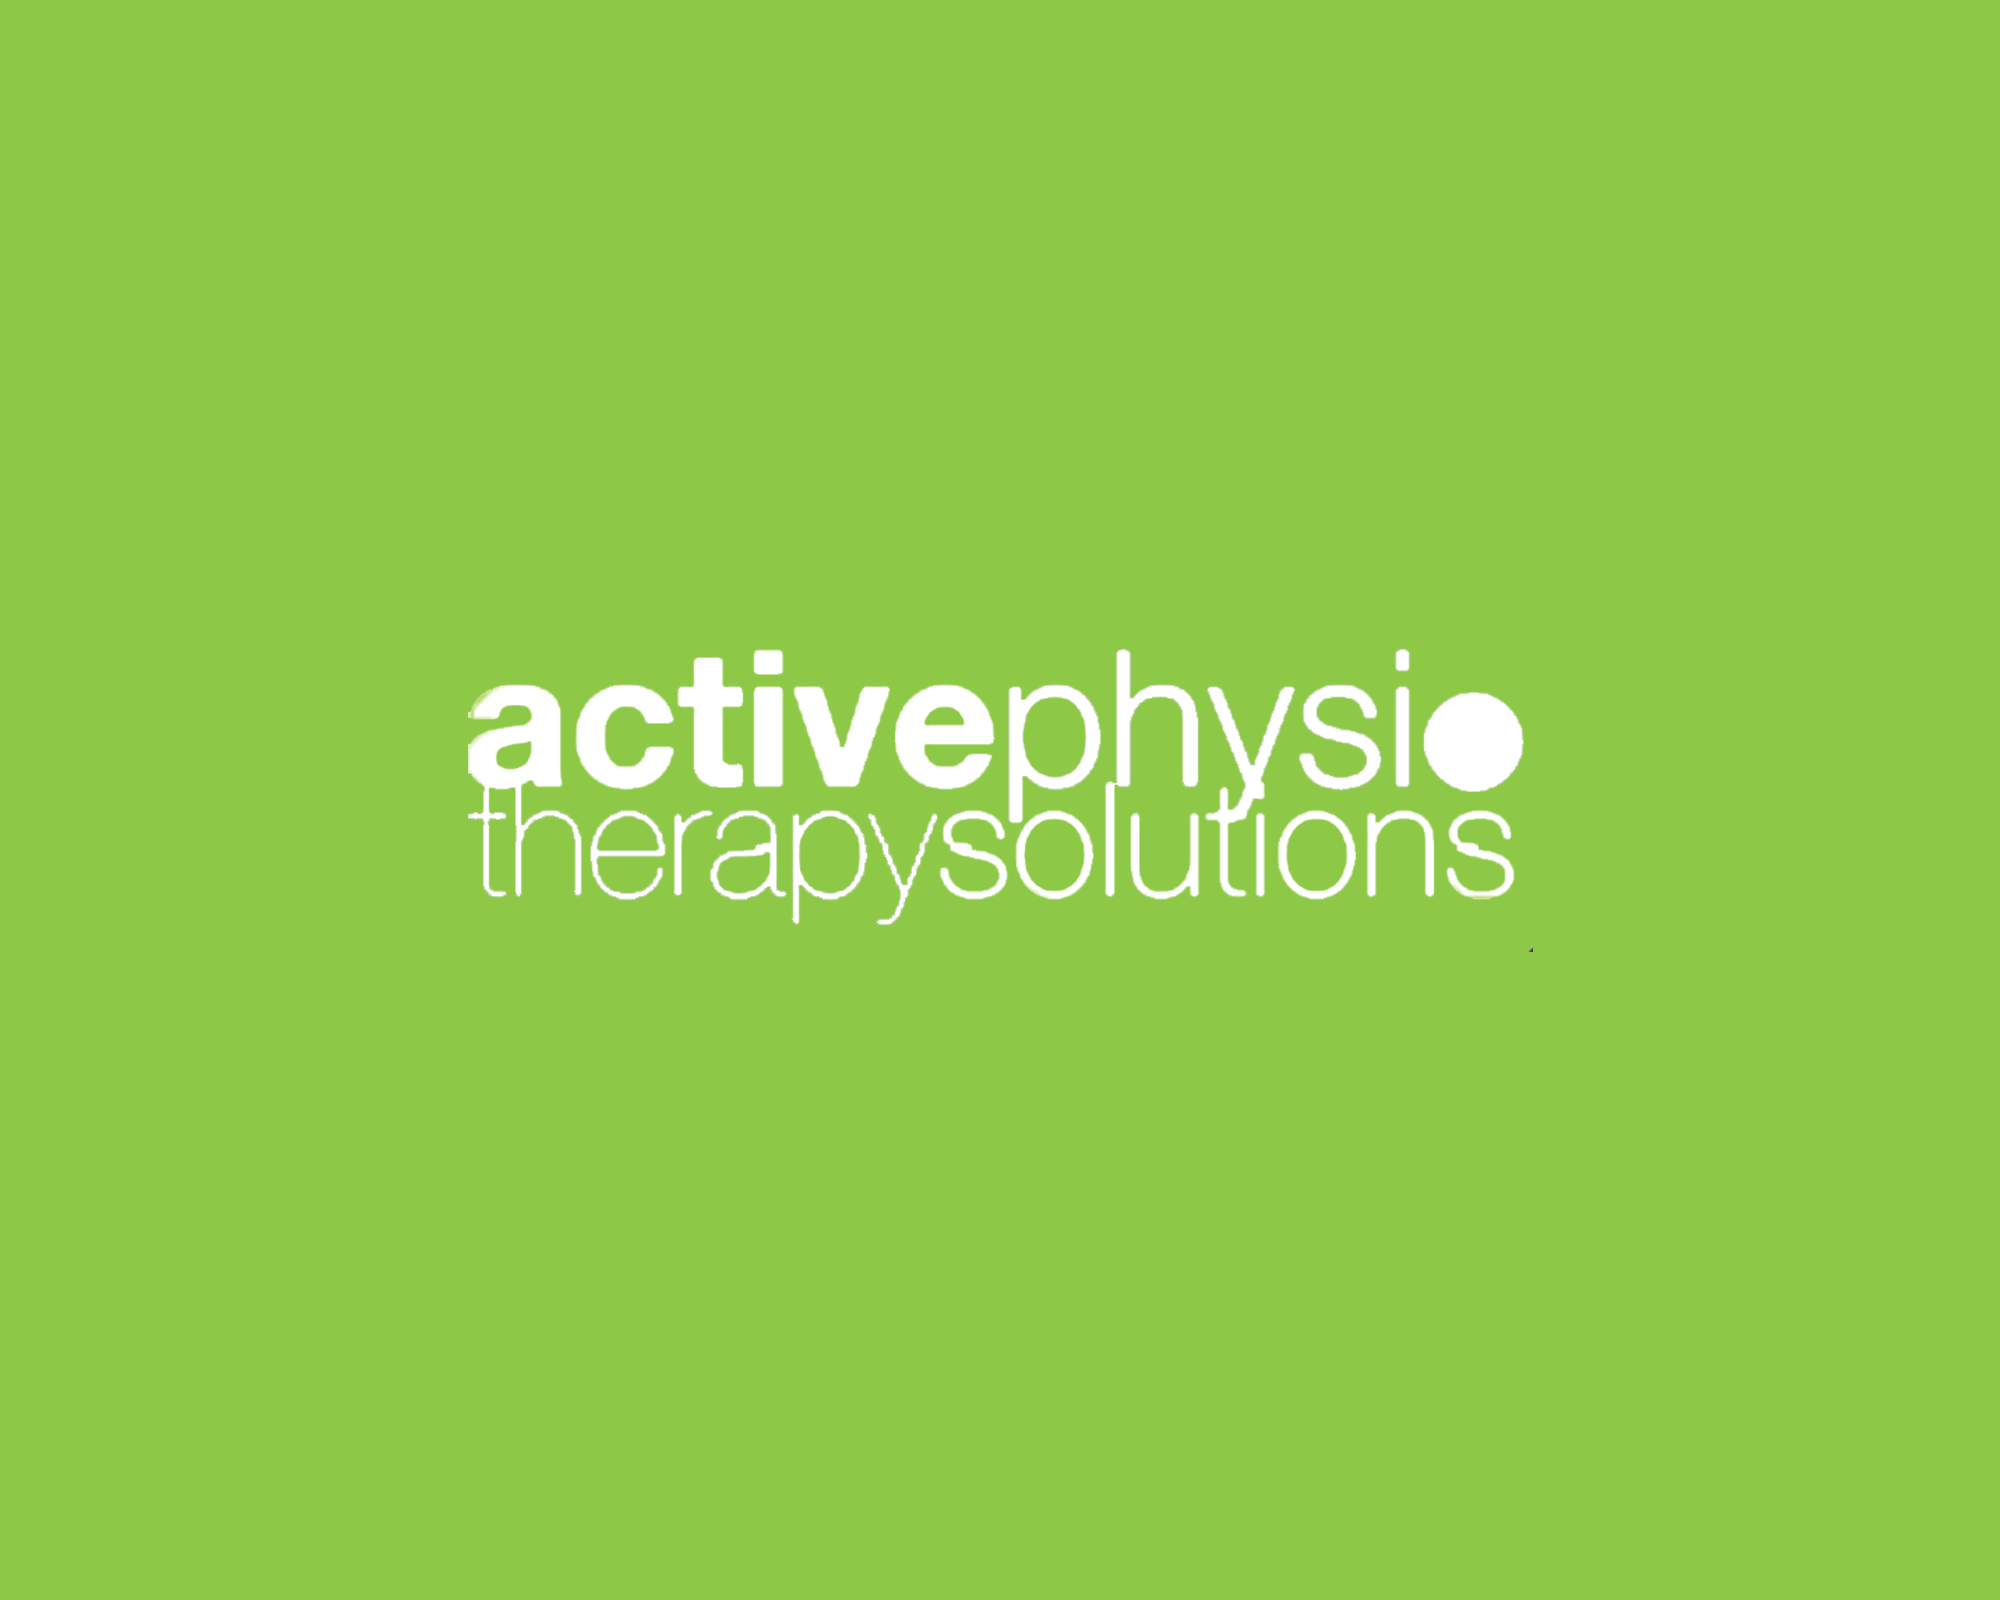 active physio therapy solutions Logo